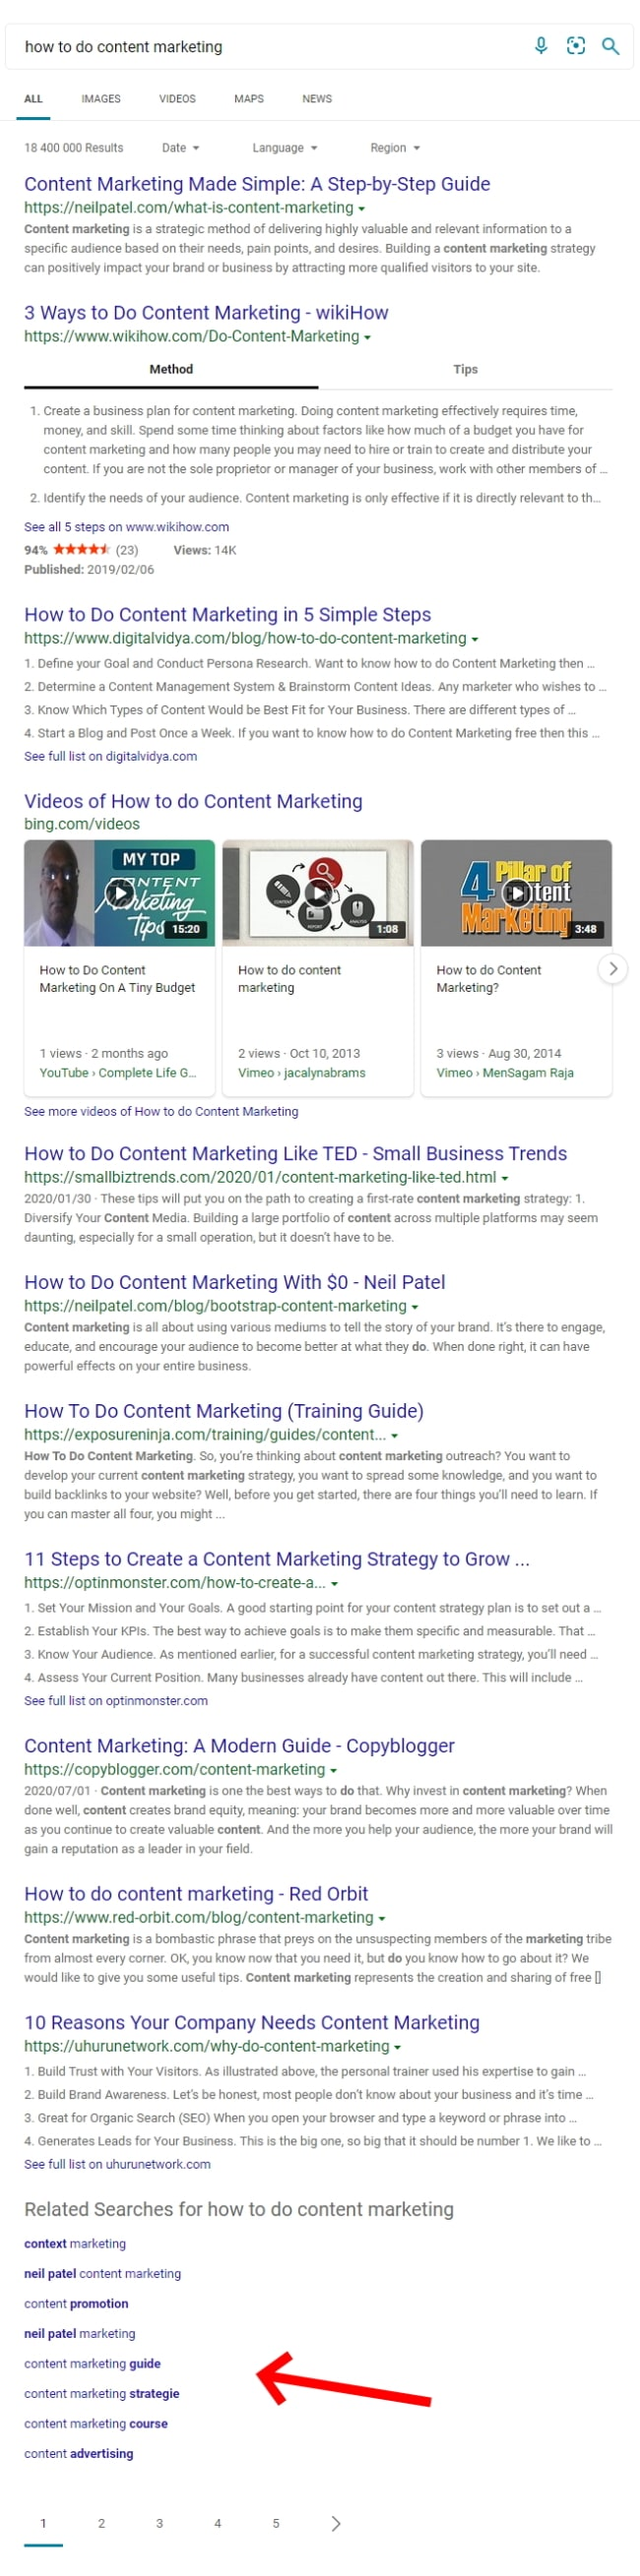 A Bing Search Results Page For The Search Term, How To Do Content Marketing. Notice The Related Searches At The Bottom Of The Page